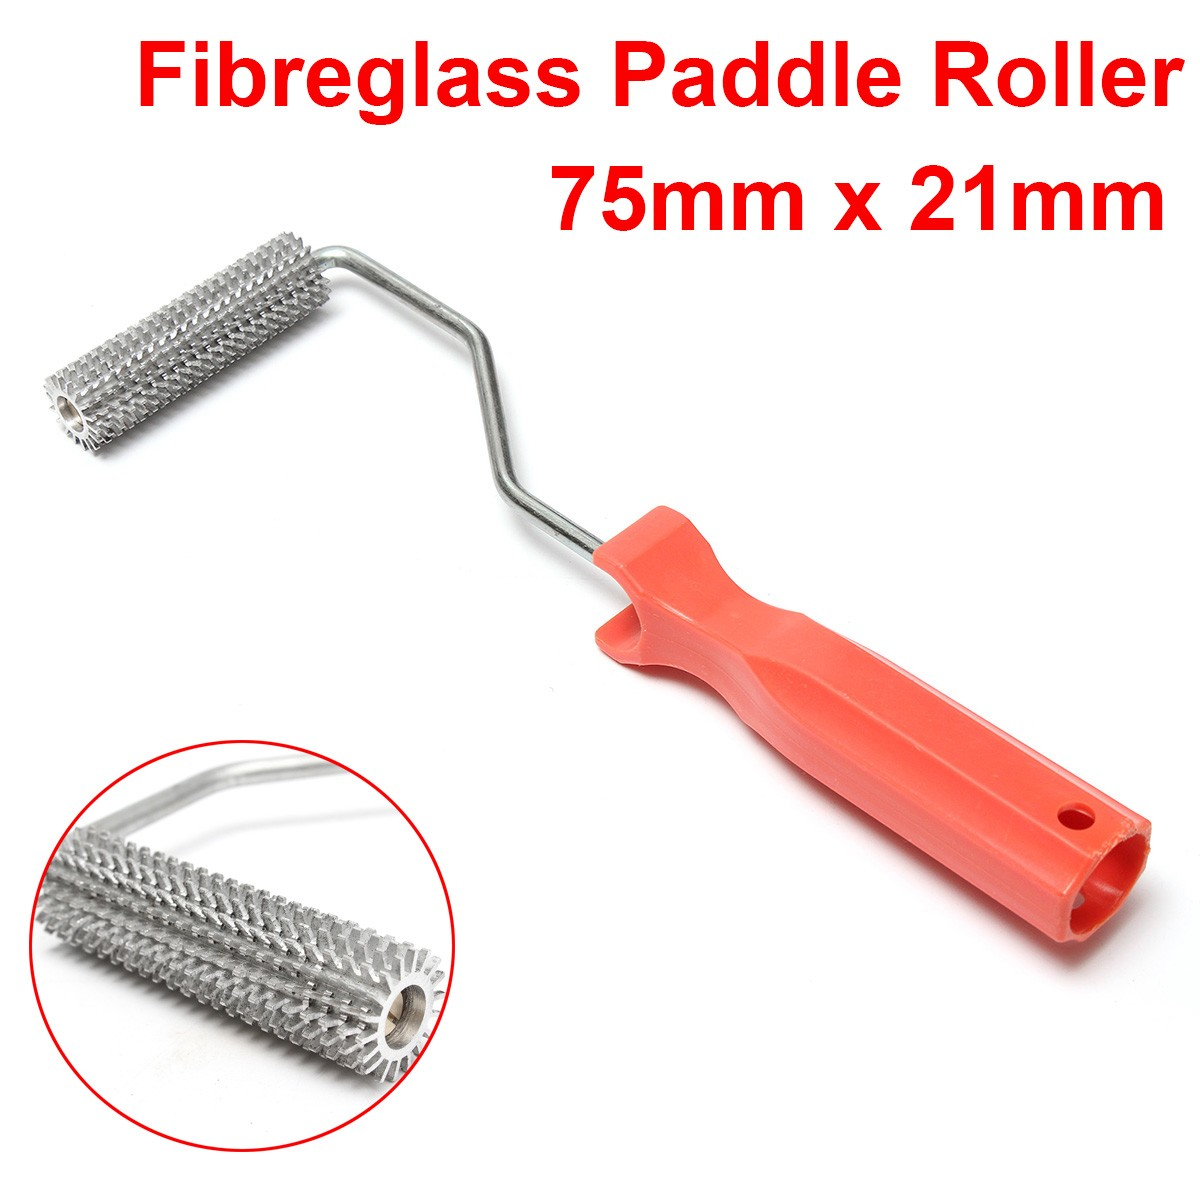 High Quality Aluminum Alloy Fiber Glass Paddle Roller 75mm x 21mm